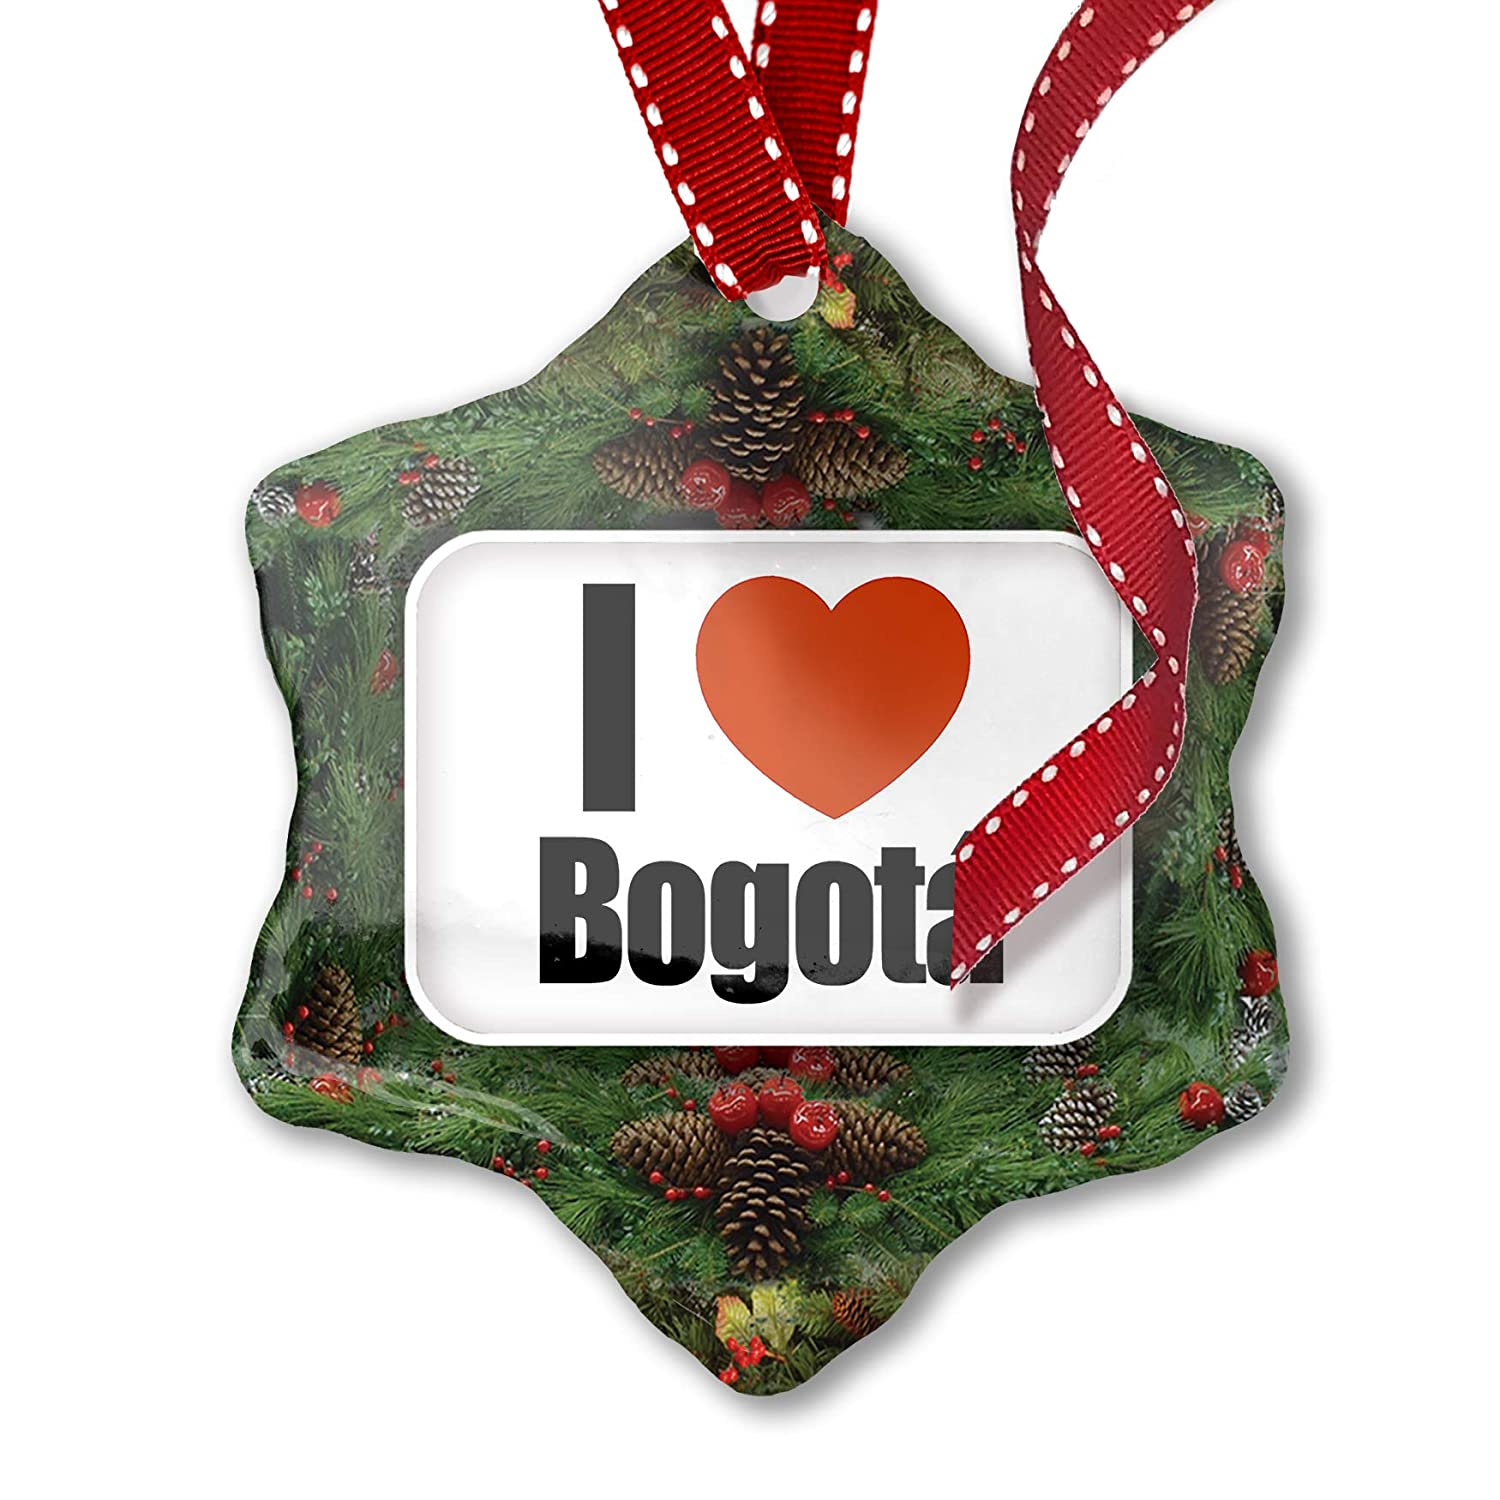 Christmas In Colombia South America.Amazon Com Neonblond Christmas Ornament I Love Bogoti